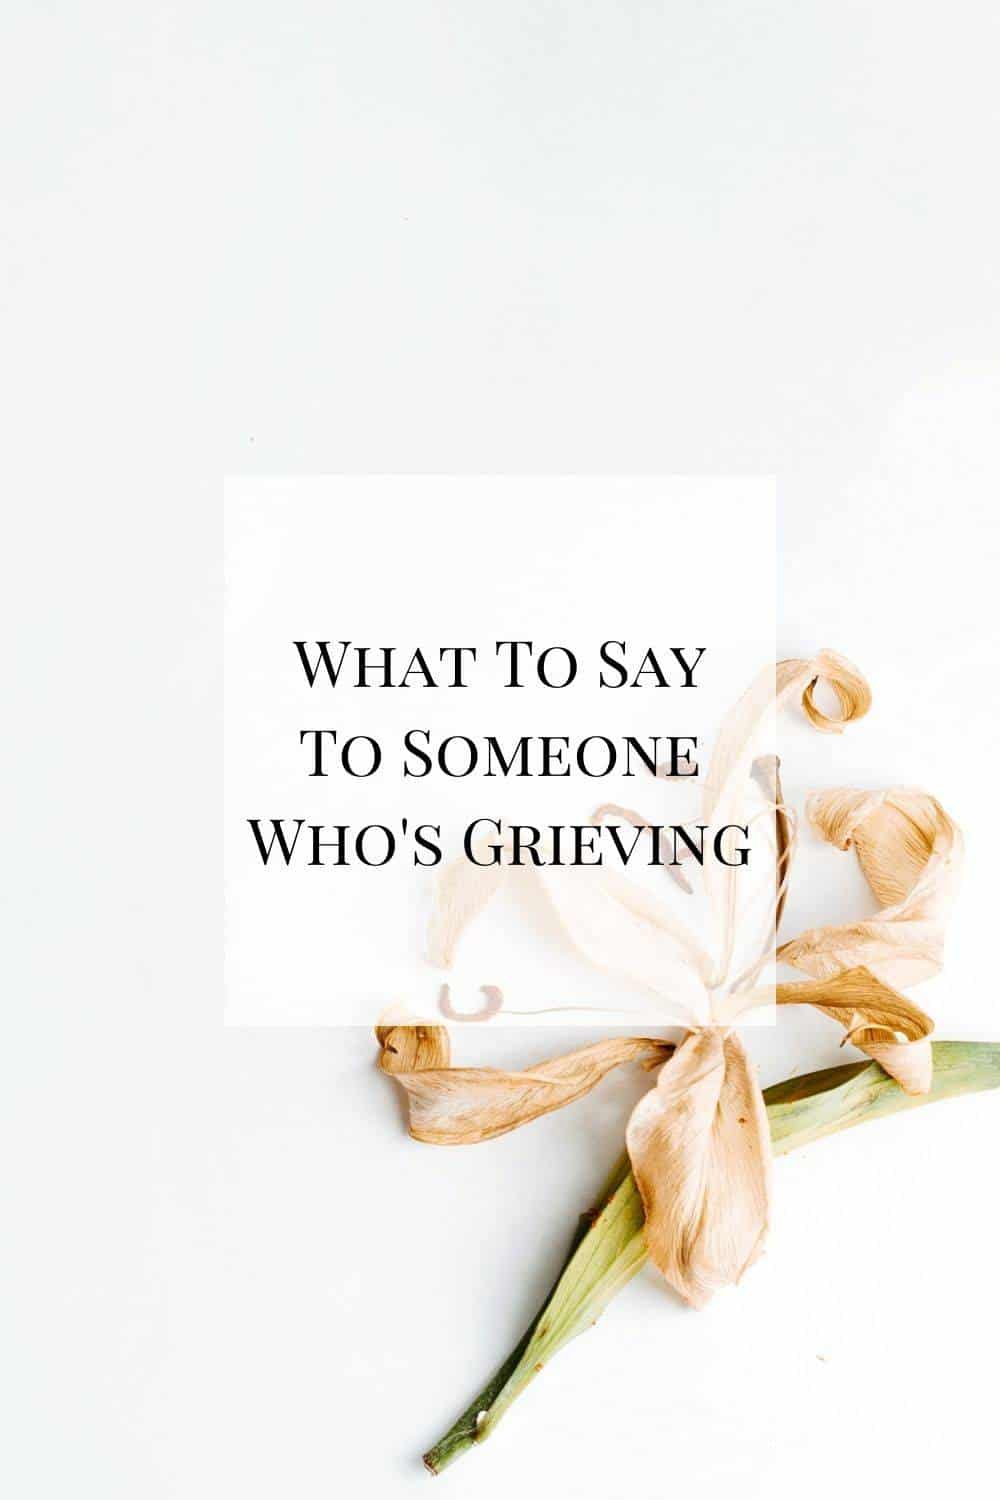 A look at what to say to someone who's grieving (and what NOT to say). It's tempting to try and fix grief, but that can actually be more harmful.